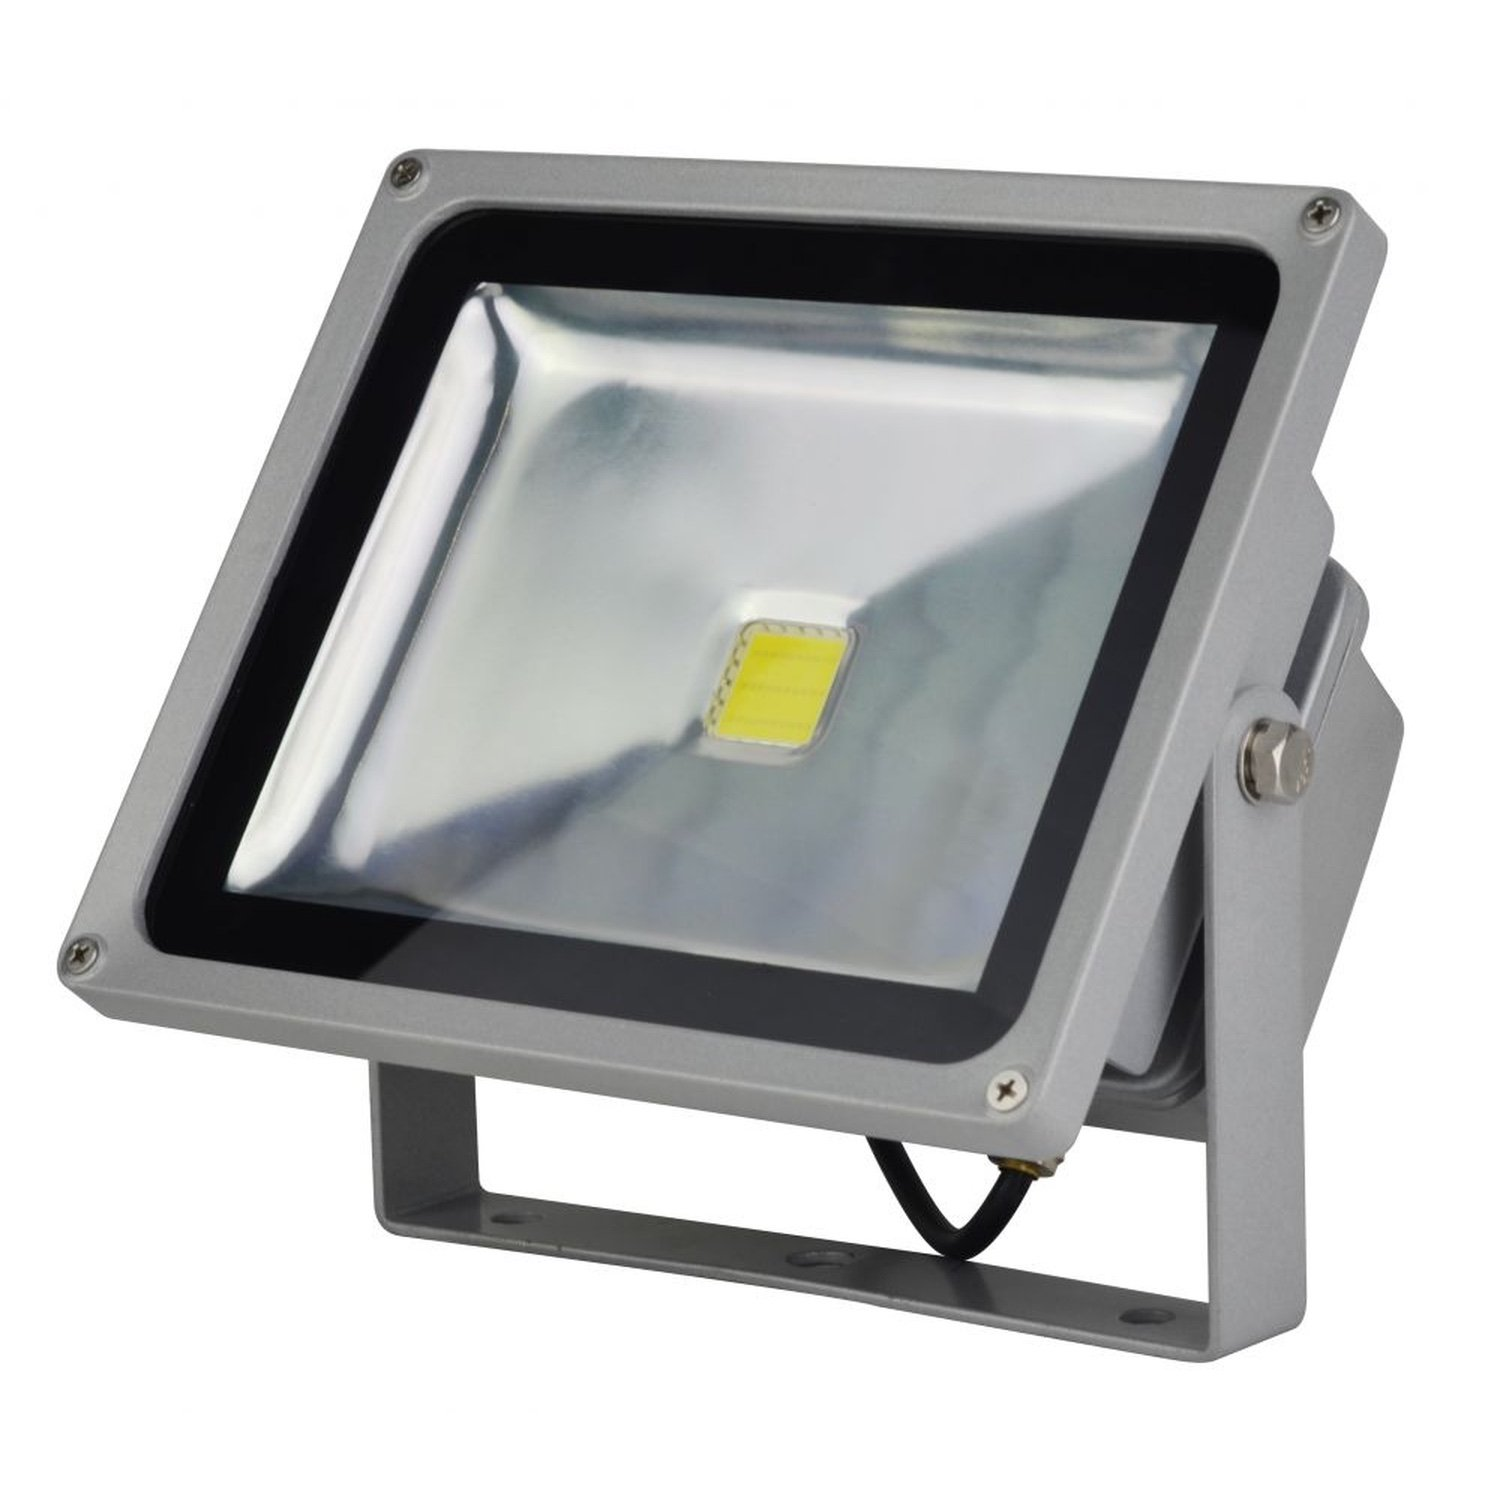 LED Spotlight Spotlight 30W 3000K Warm Light